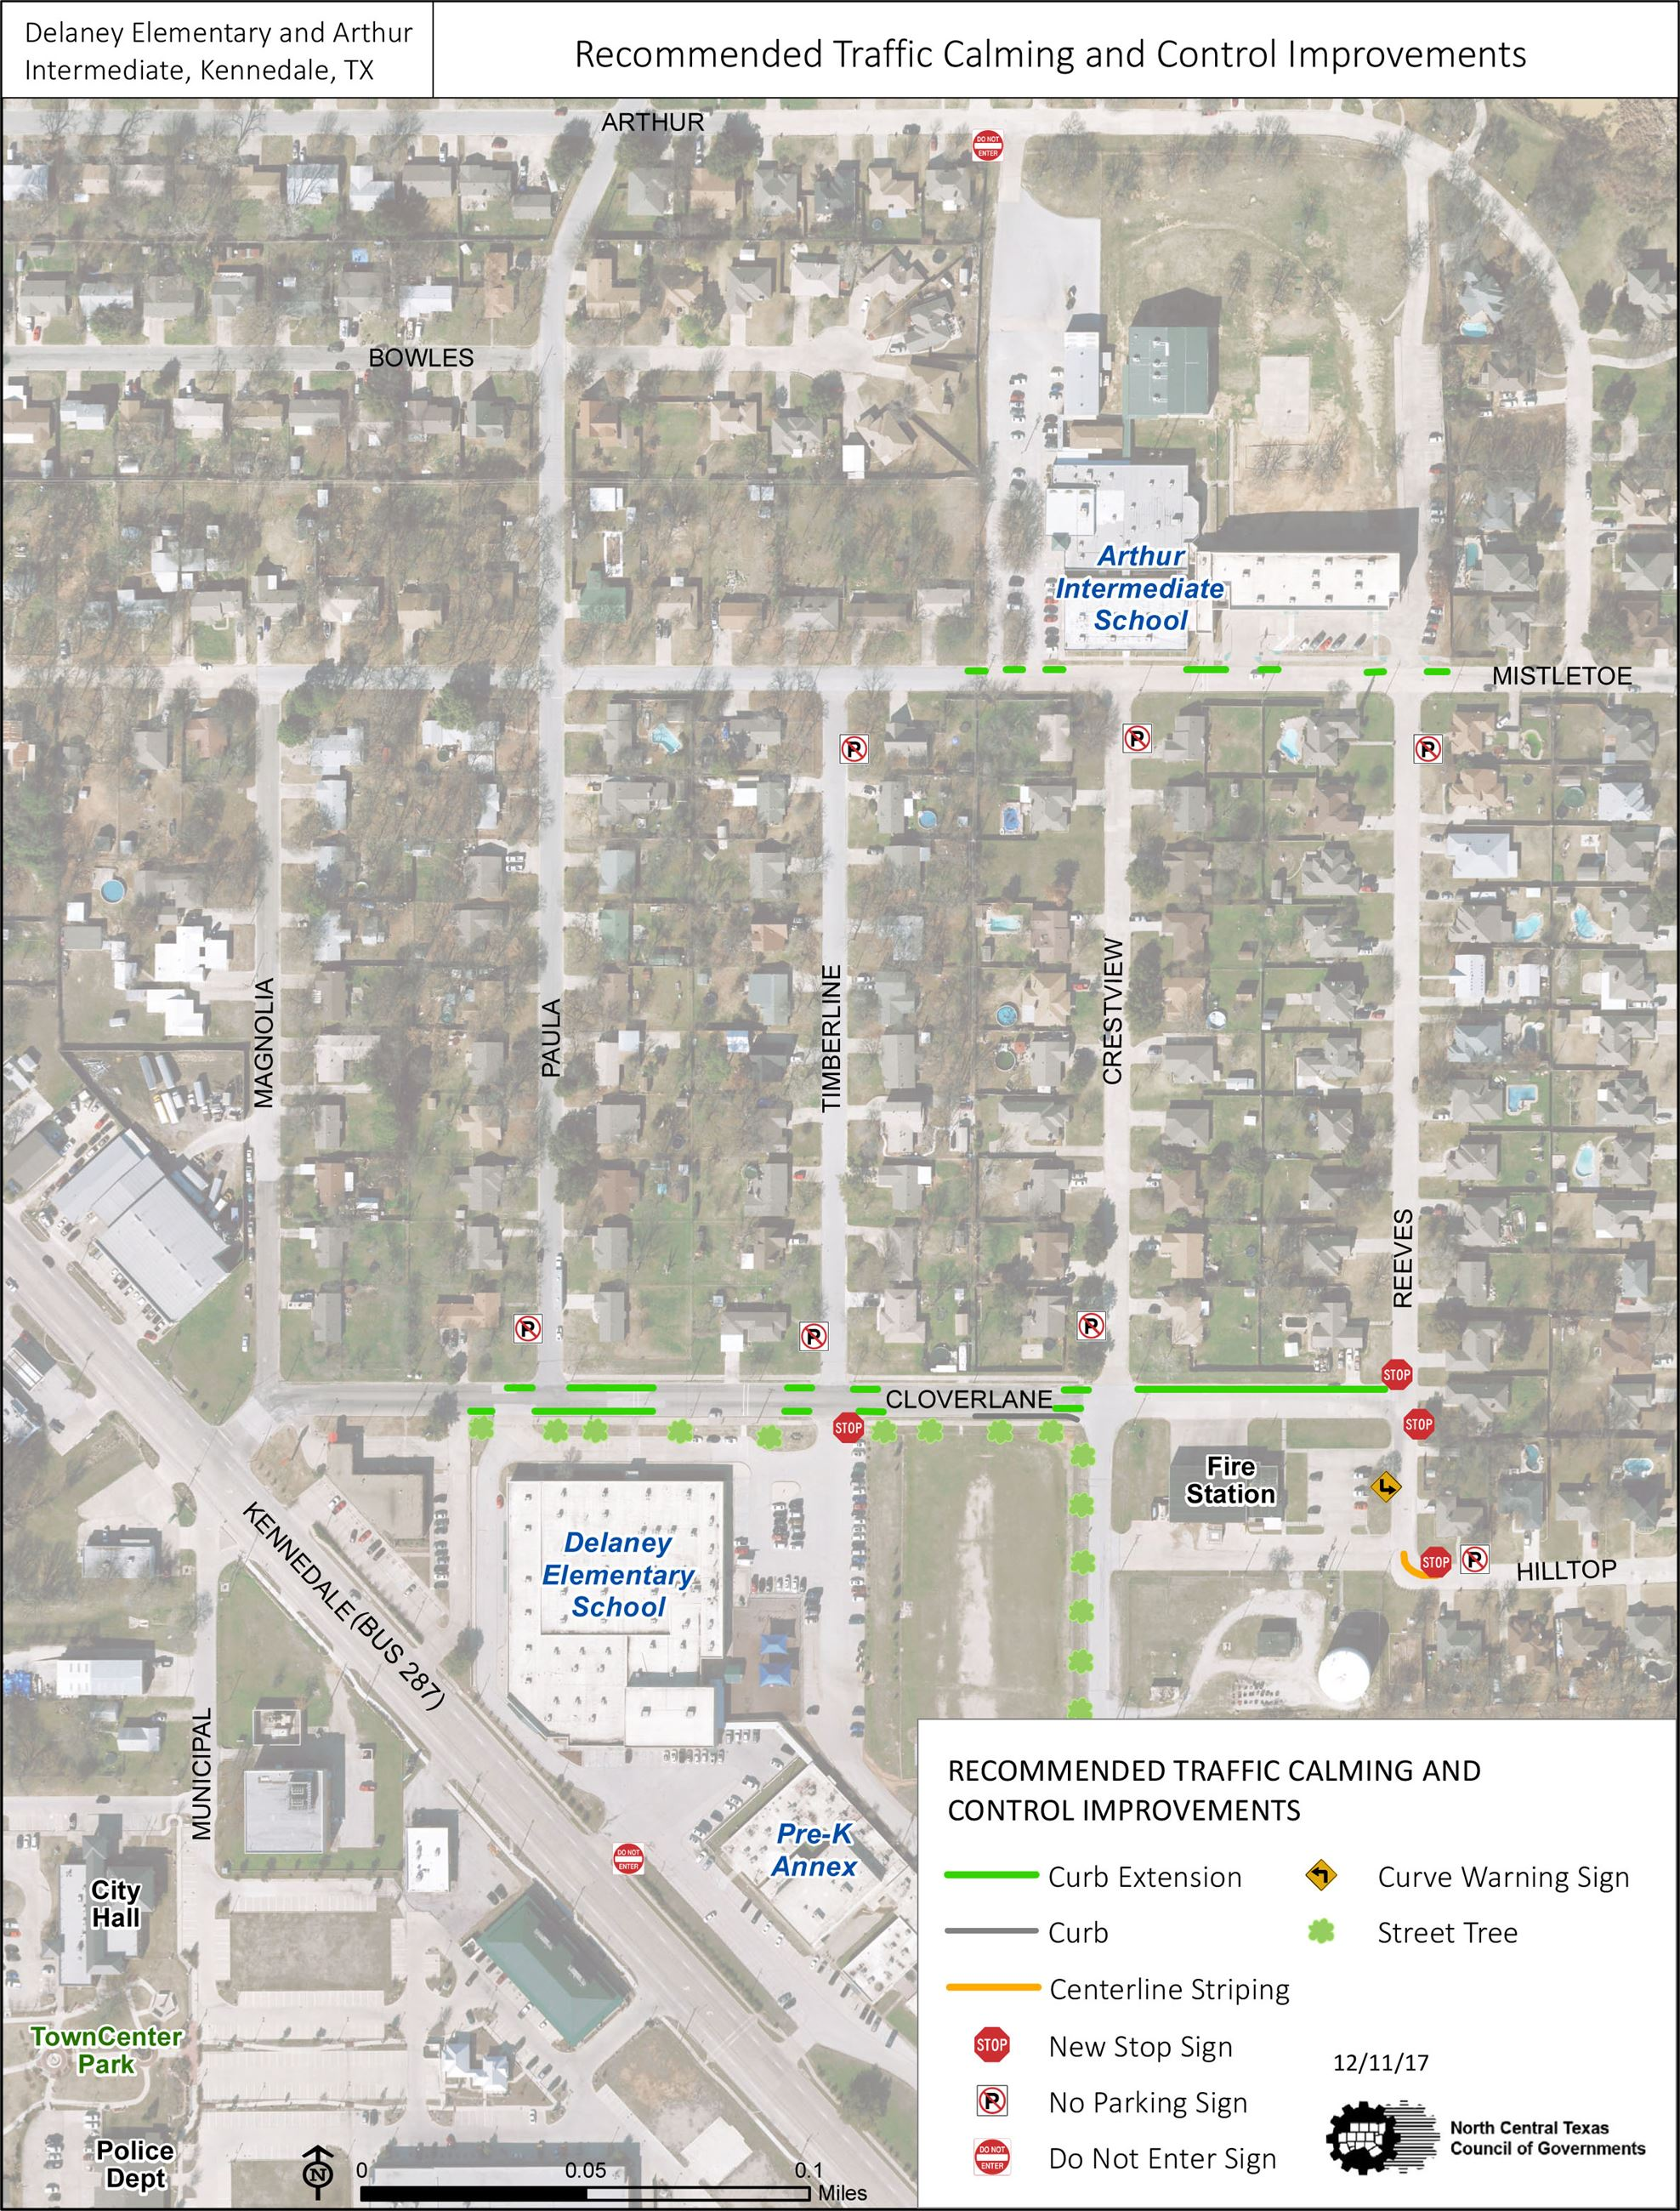 SRTS Recommended Traffic Calming and Control Improvements